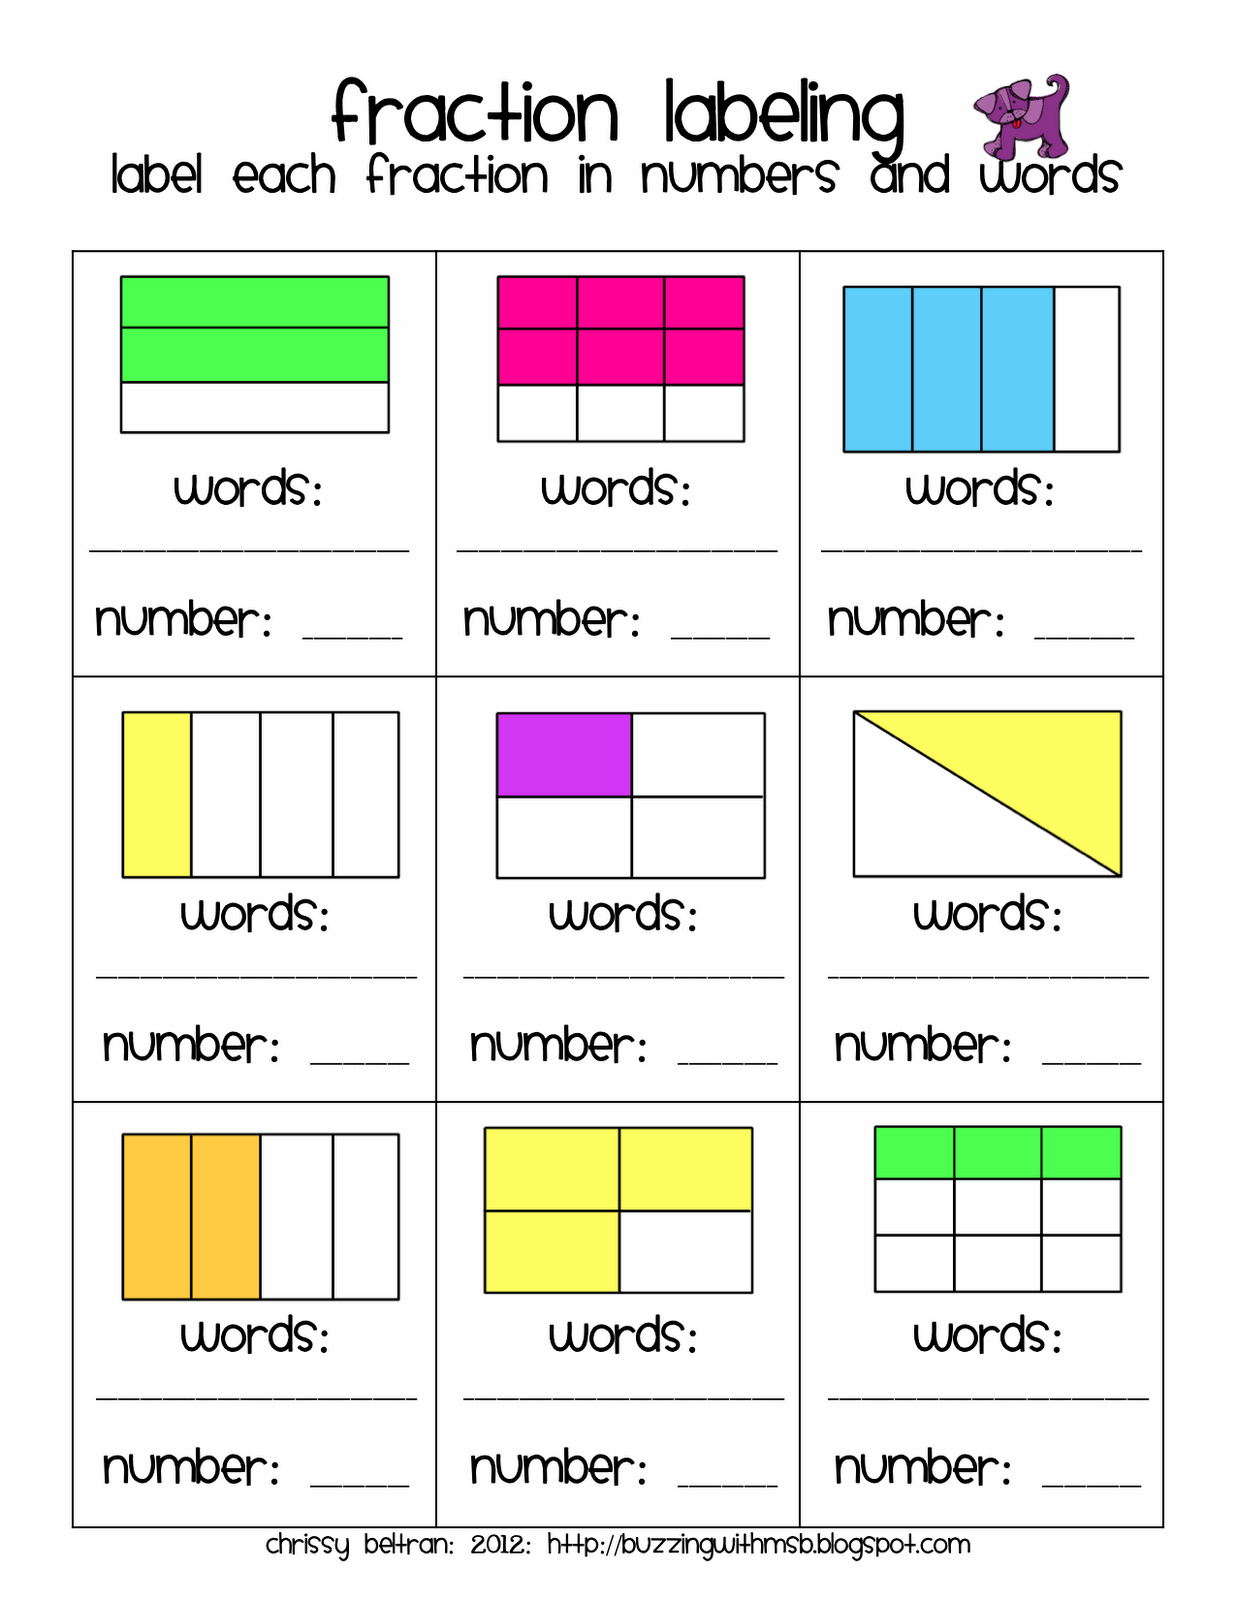 Label Fractions In Words And Numbers